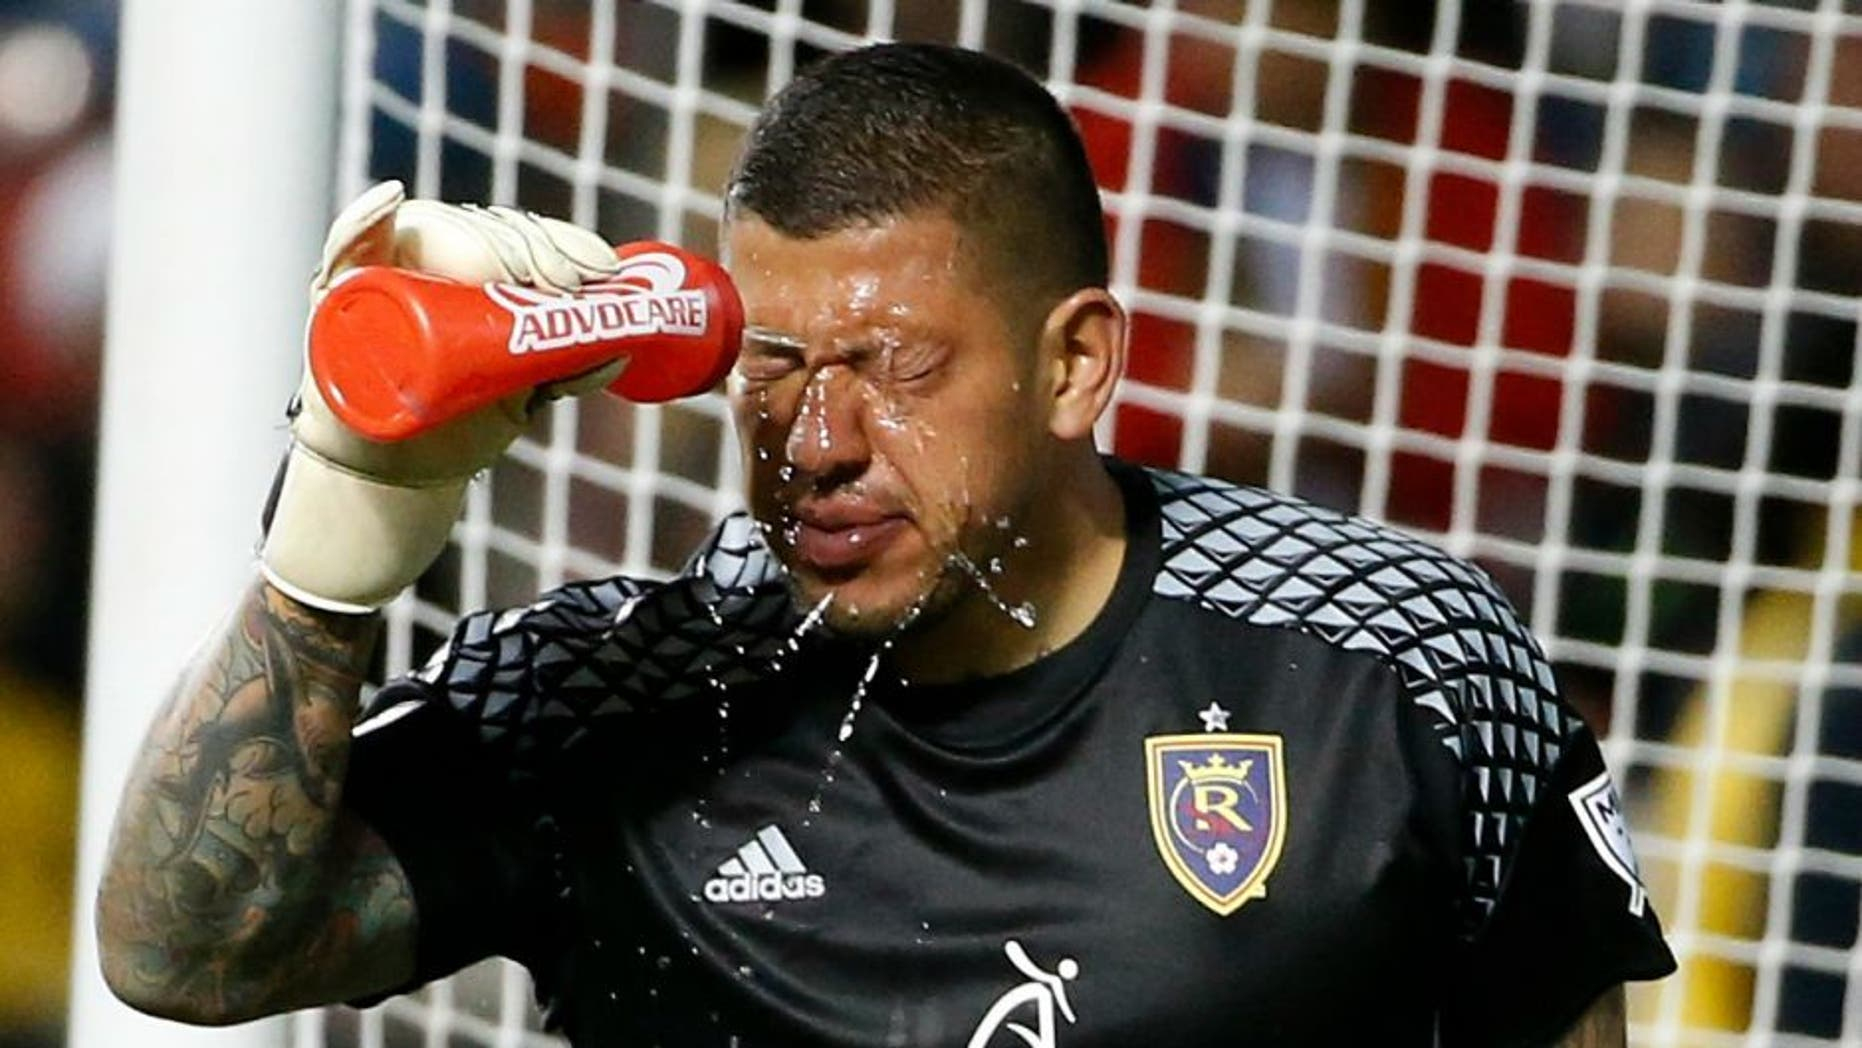 Apr 30, 2016; Sandy, UT, USA; Real Salt Lake goalkeeper Nick Rimando (18) cools down after taking a ball to the face in the second half against the Houston Dynamo at Rio Tinto Stadium. Real Salt Lake defeated Houston Dynamo 2-1. Mandatory Credit: Jeff Swinger-USA TODAY Sports